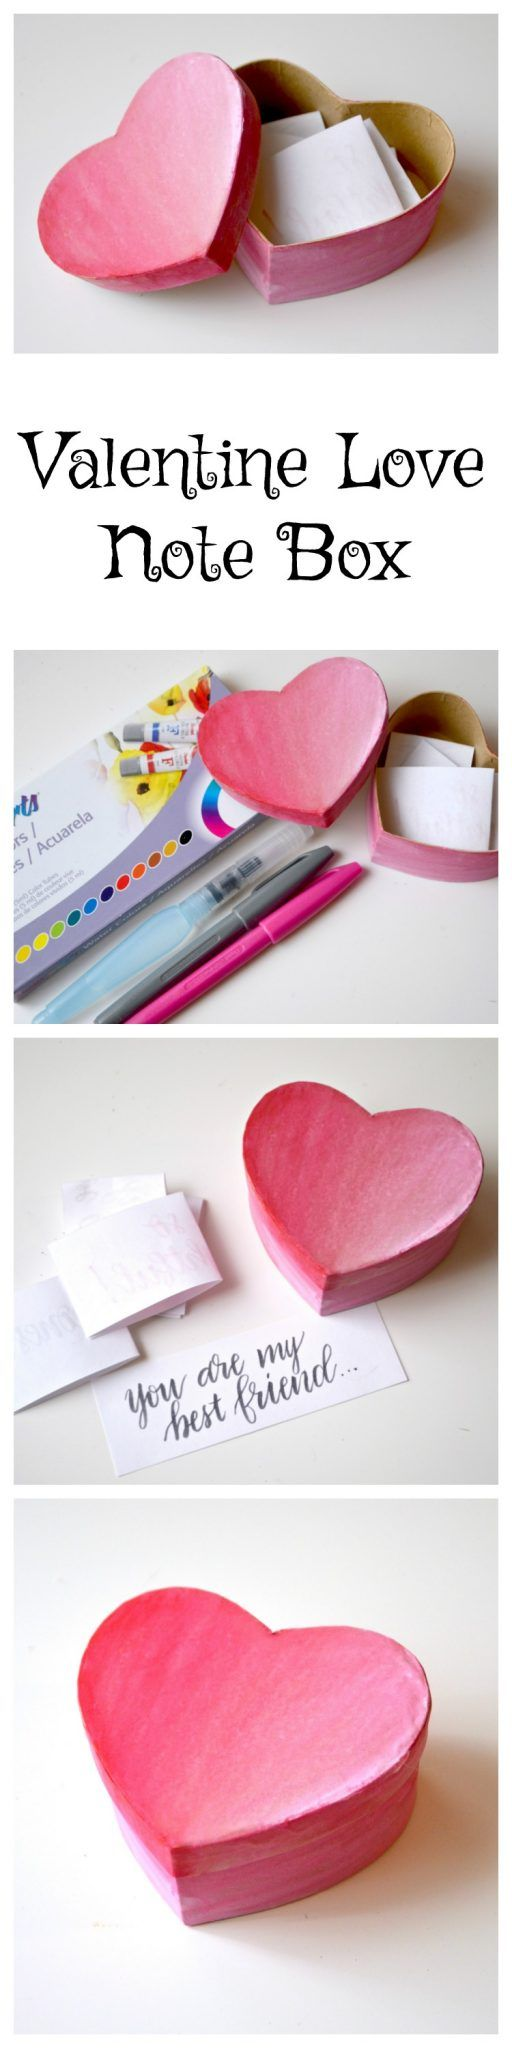 Handwritten love notes are a treasured gift! #ThatsMyPoint Don't you agree? Make this Valentine Love Note Box with @PentelofAmerica supplies! #ad